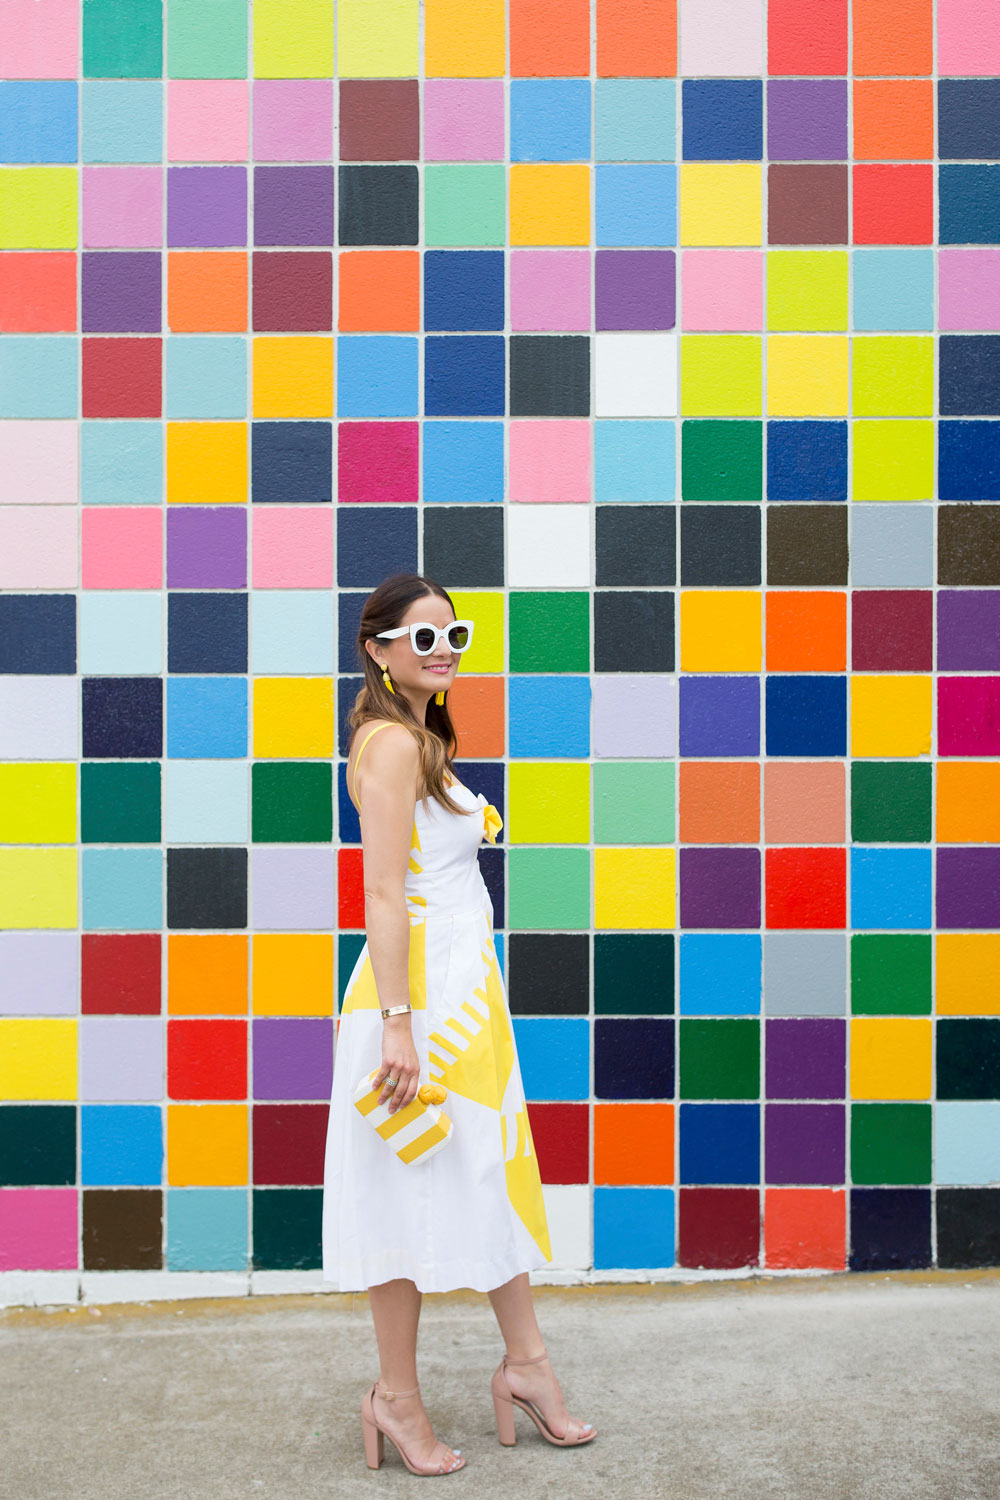 Colorful Tile Wall in San Diego